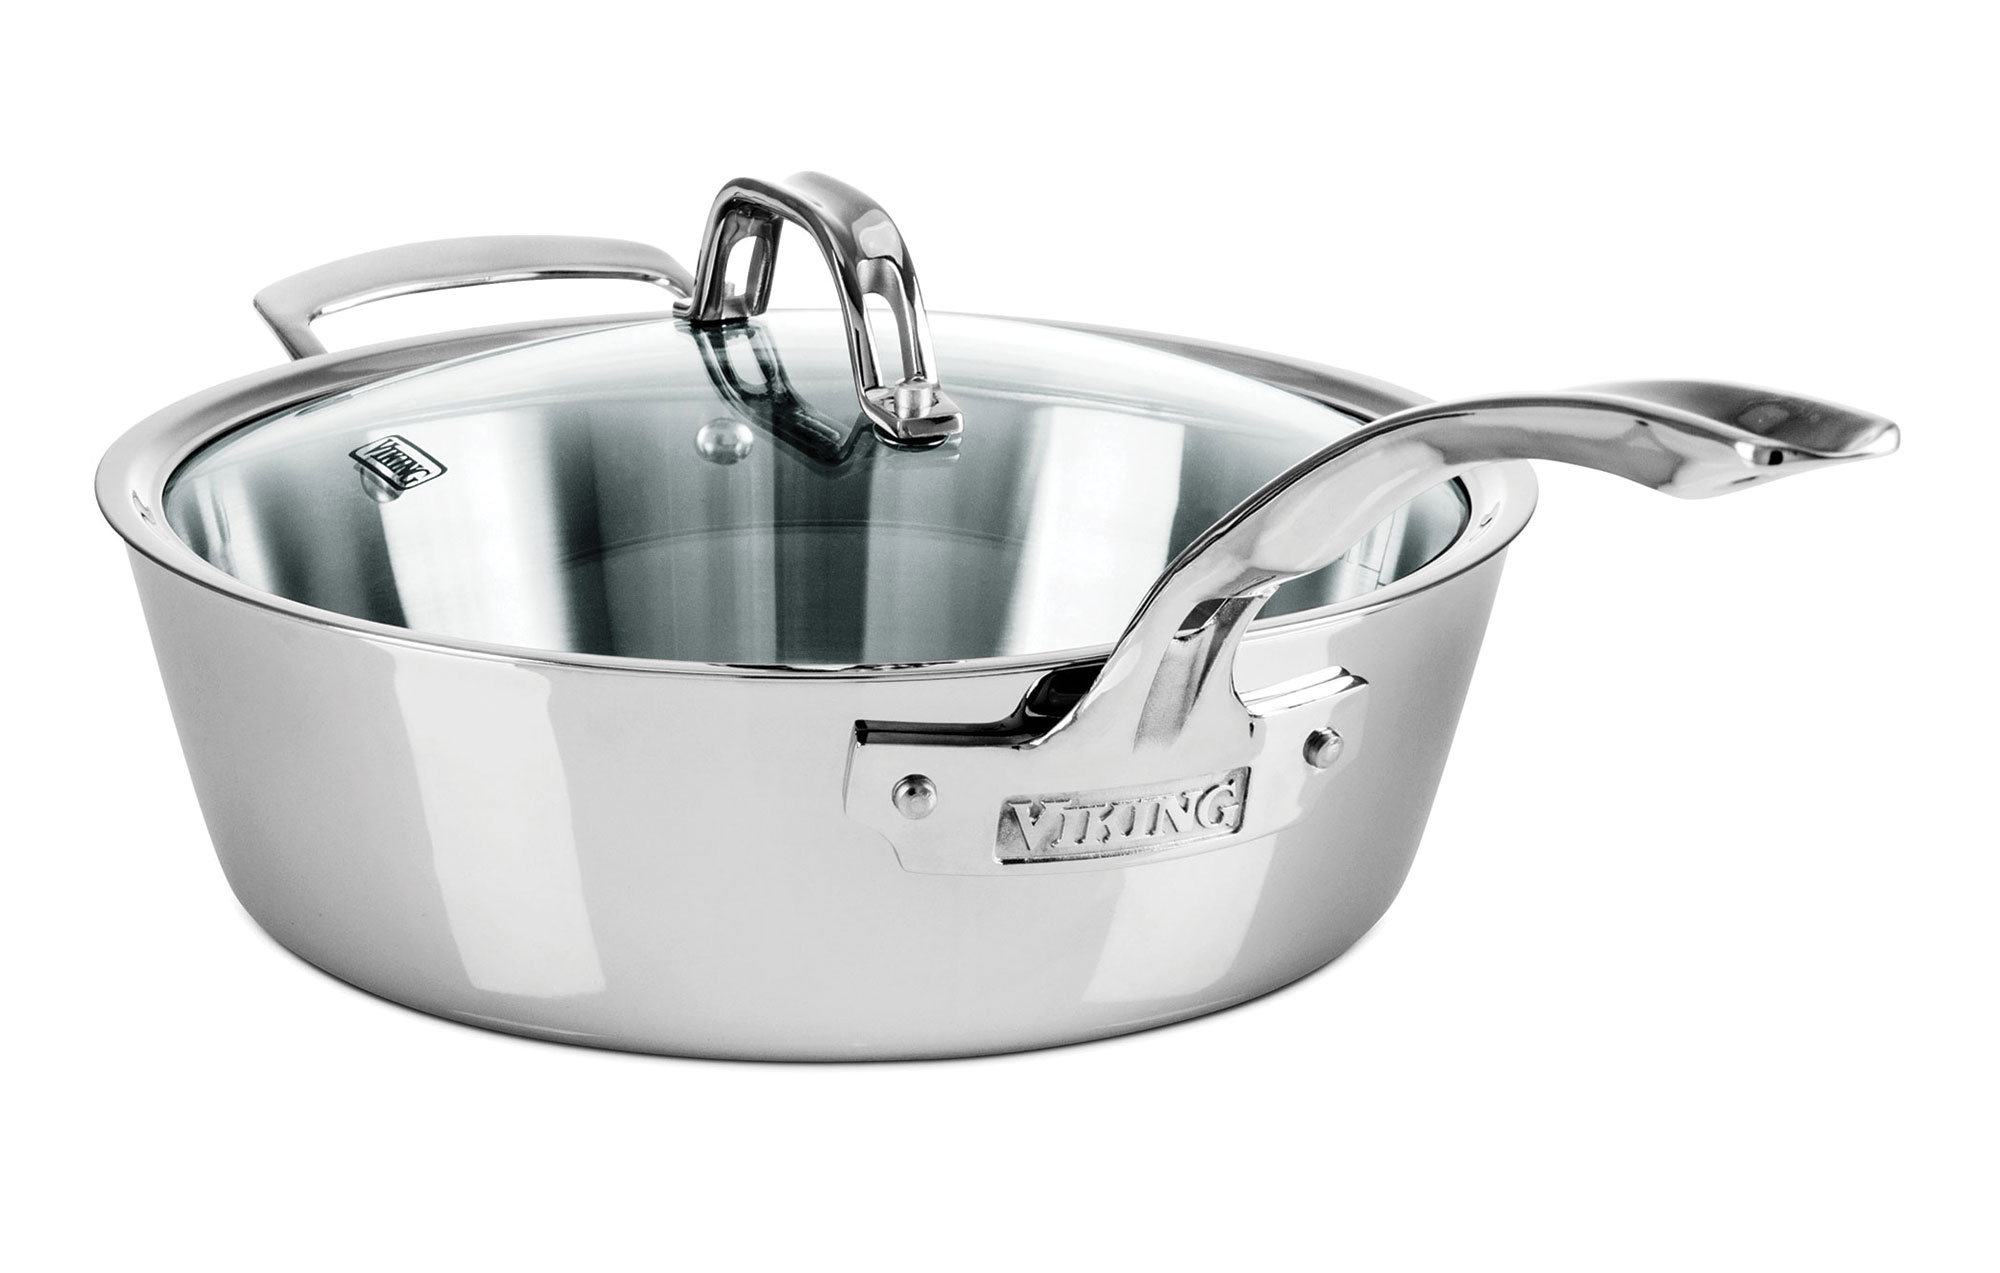 Viking Contemporary Tri Ply Stainless Steel Cookware Set